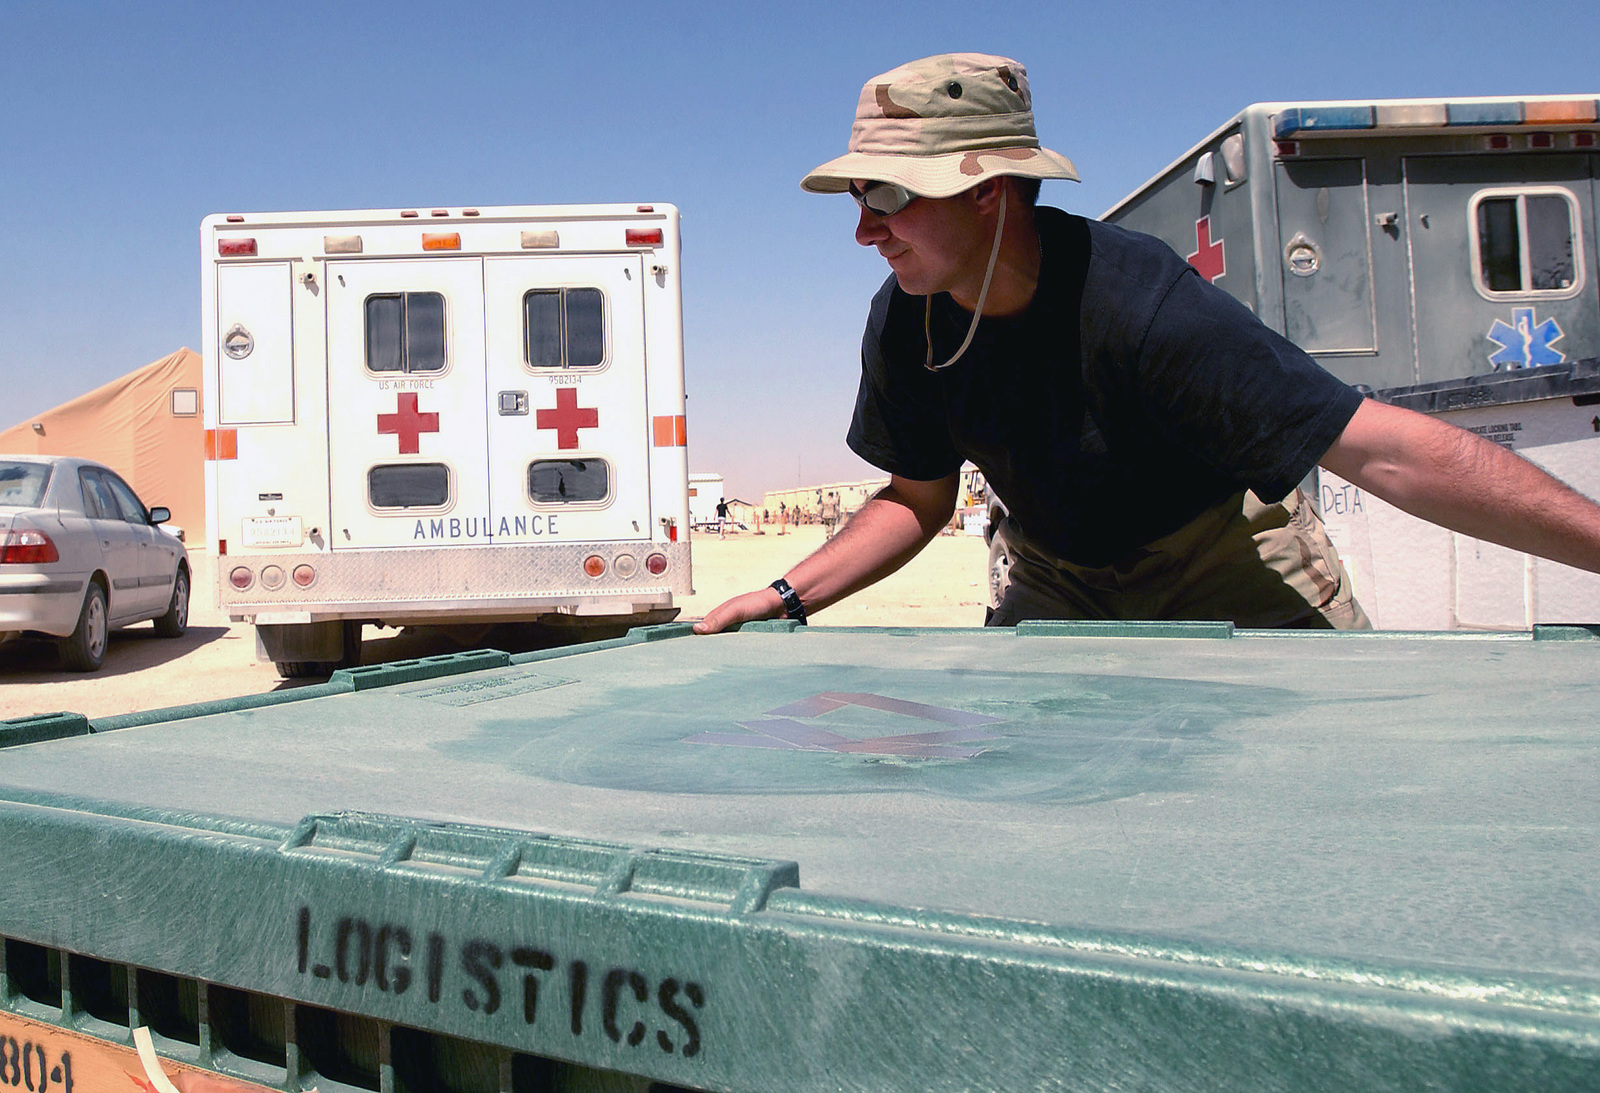 A US Air Force (USAF) Airmen assigned to the 405th Expeditionary Medical Squadron (EMS), prepares to unpack supplies after arriving at a forward deployed location, during Operation ENDURING FREEDOM